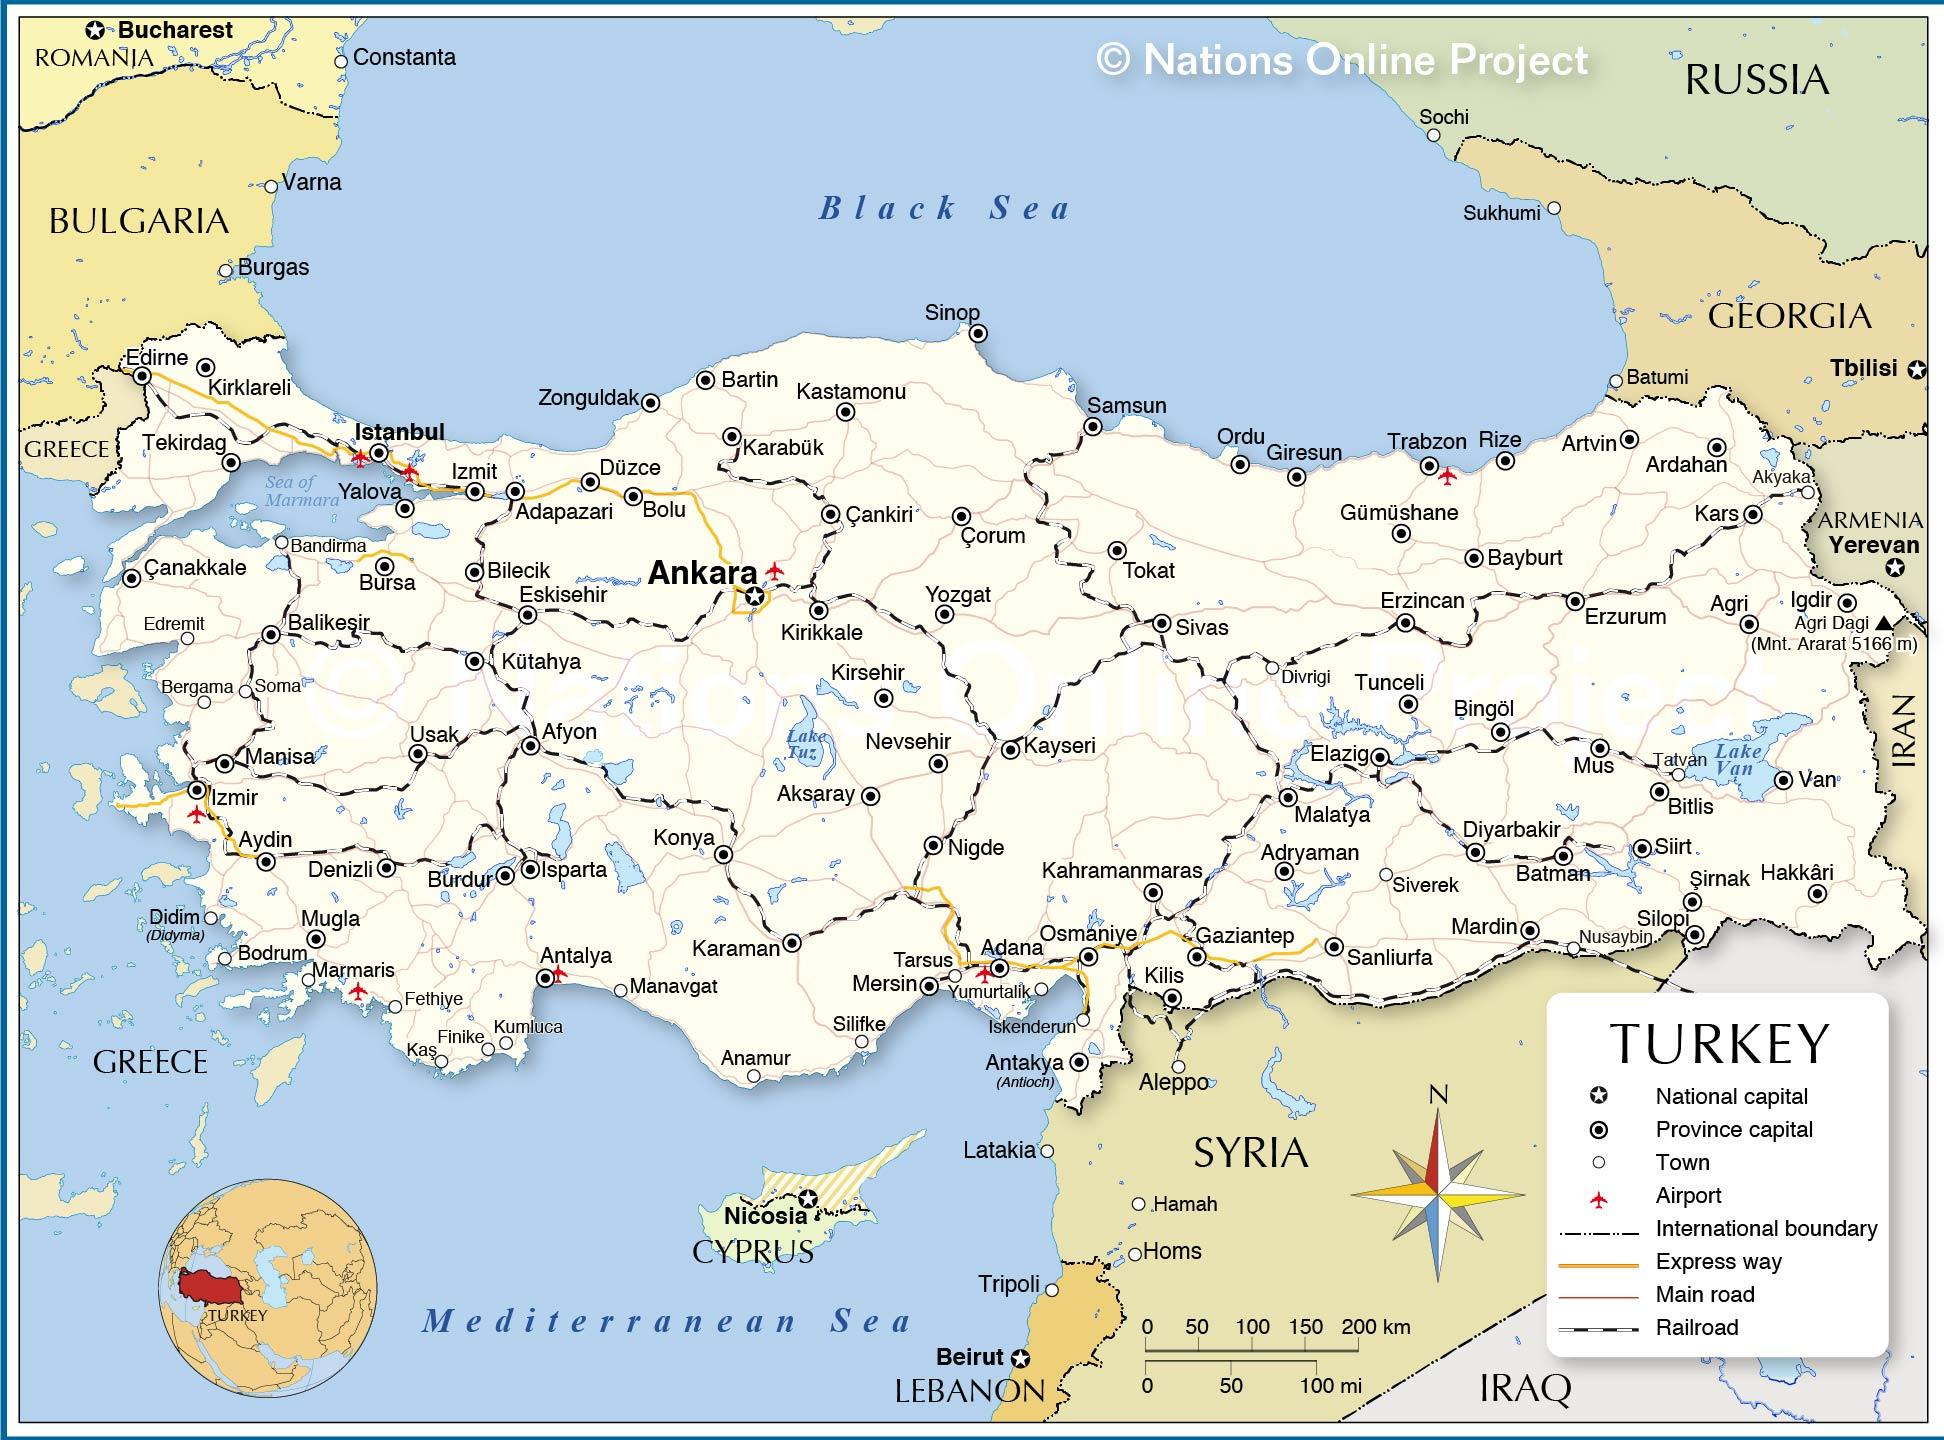 Map of Turkey and surrounding countries - Turkey country map ... Map In Turkey on uzbekistan in map, cook islands in map, south sudan in map, easter islands in map, jordan in map, bahrain in map, troy in map, mauritania in map, togo in map, czech republic in map, cappadocia in map, antioch in map, andorra in map, luxembourg in map, turkmenistan in map, brunei in map, saudi arabia in map, saint lucia in map, djibouti in map, fertile crescent in map,